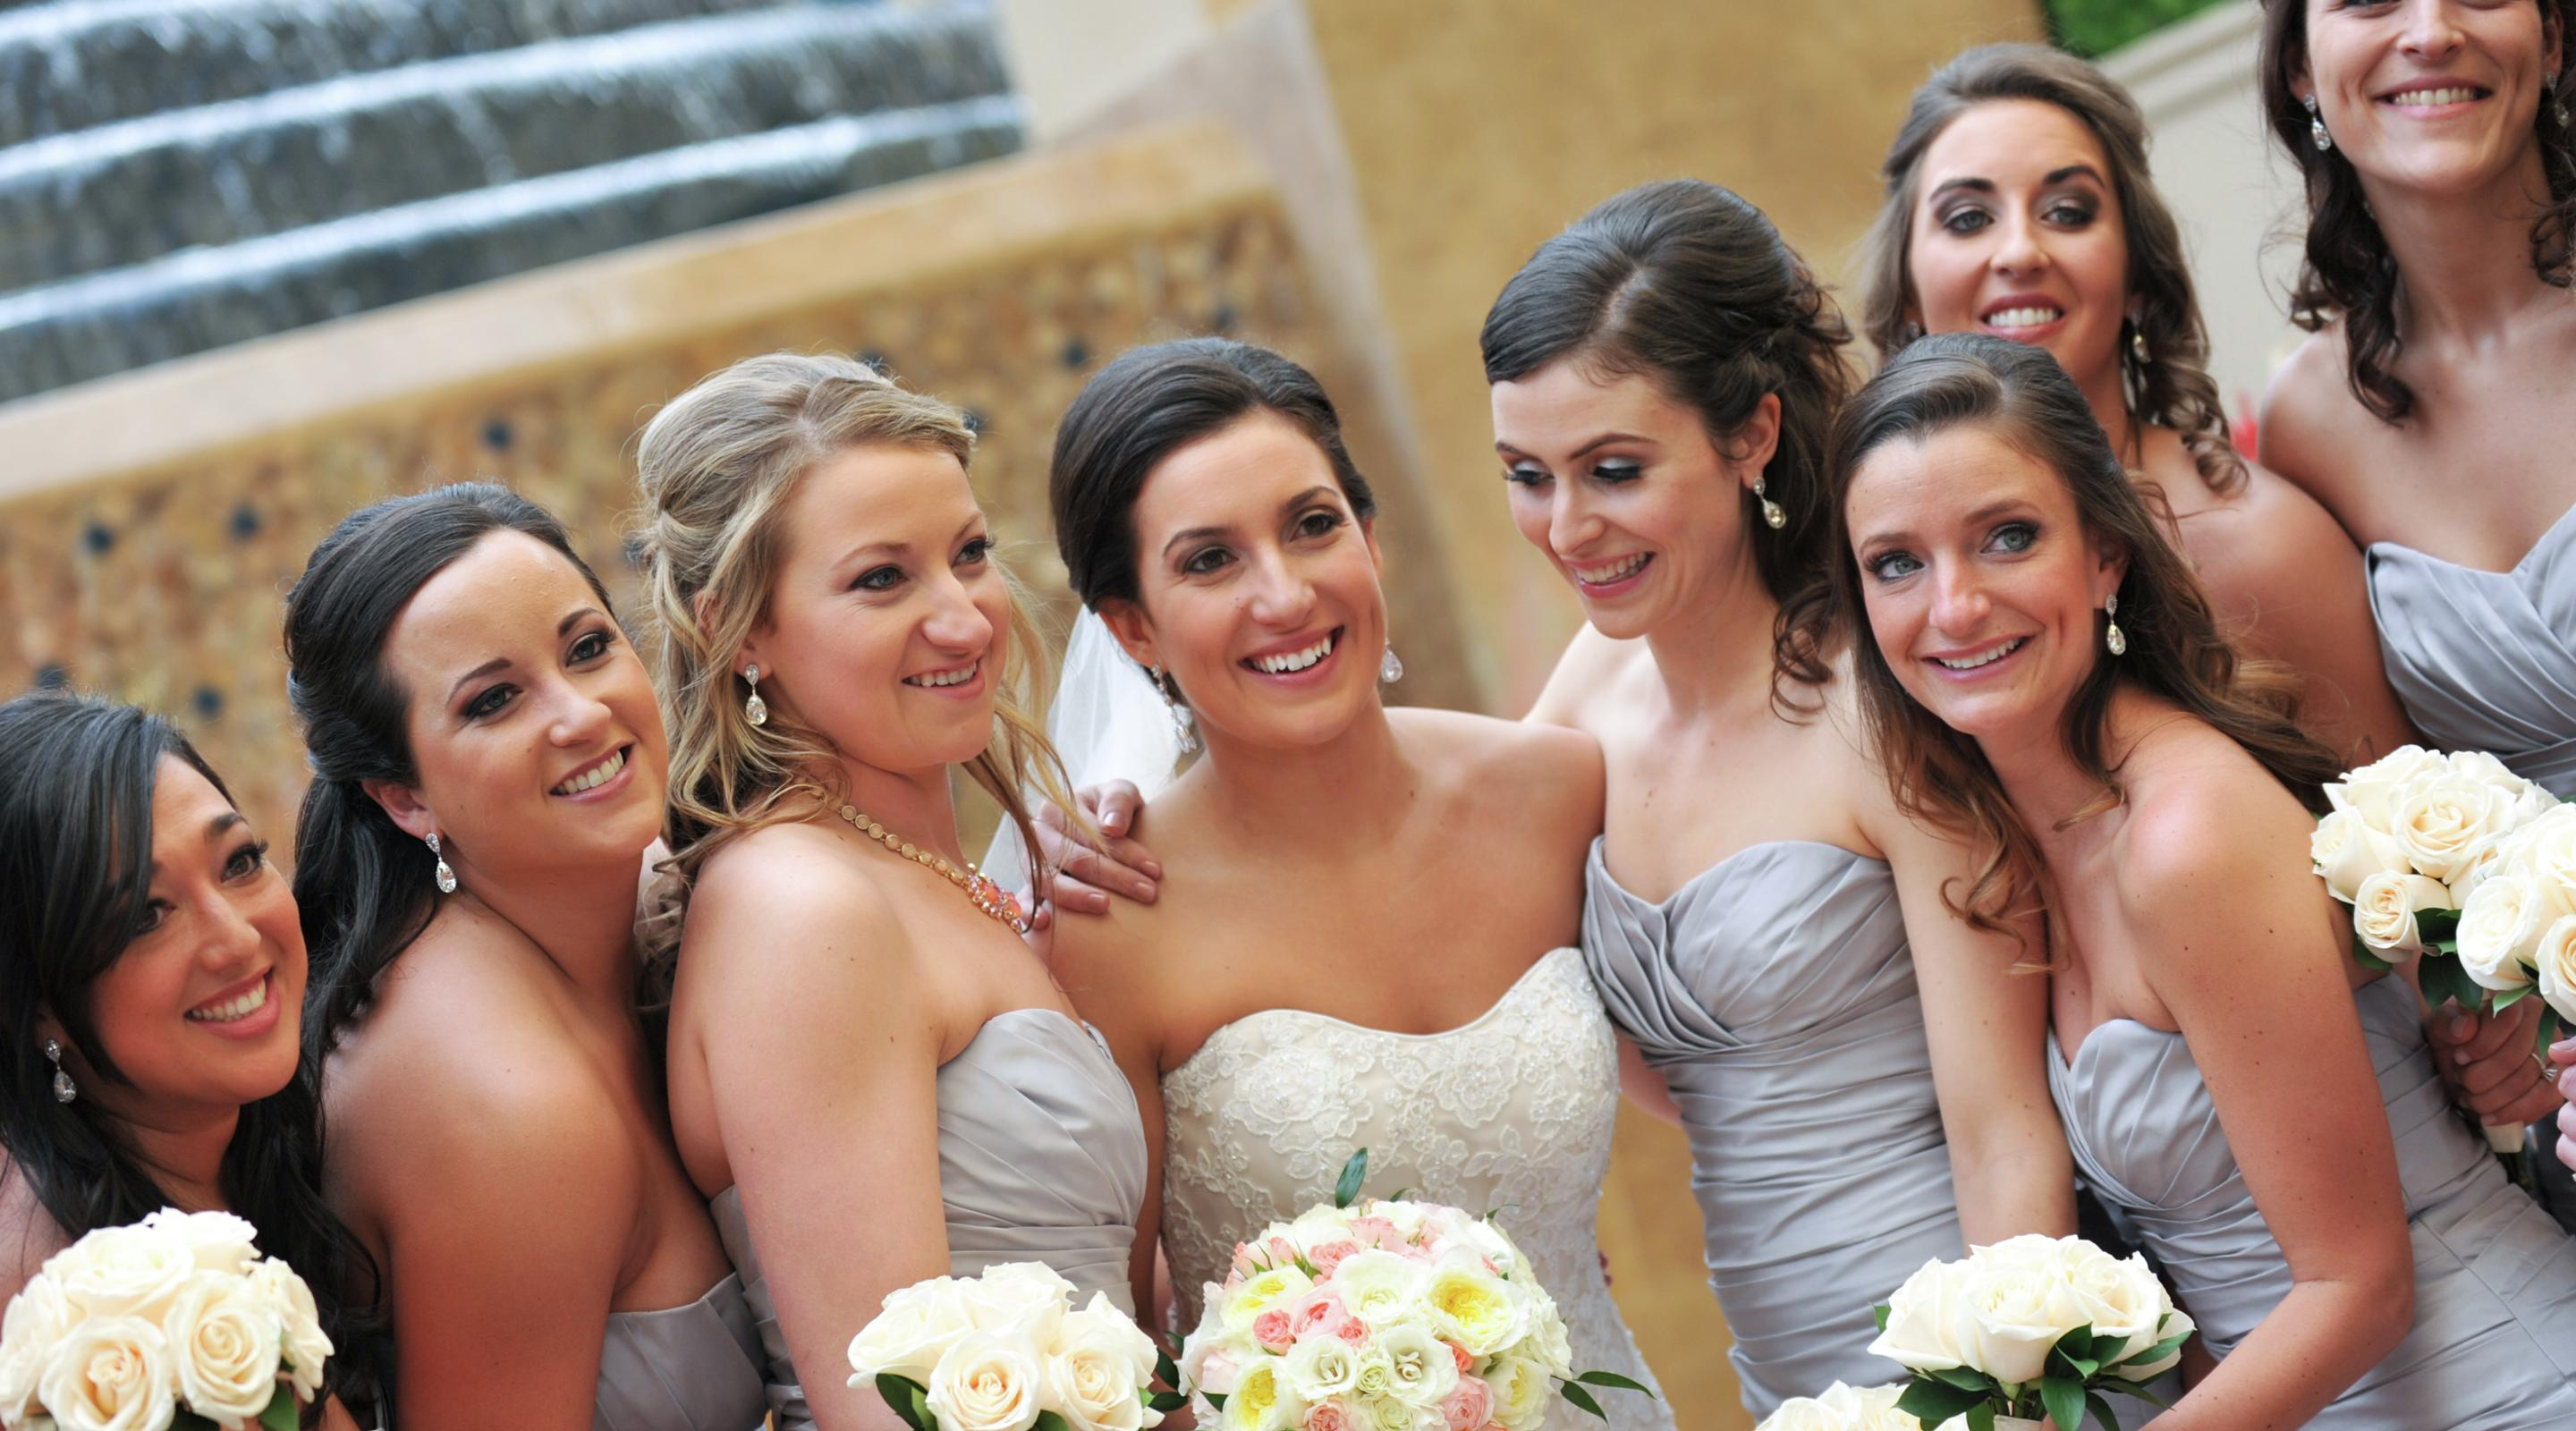 How to book hotel blocks for weddings in las vegas mgm resorts how to book hotel blocks for weddings in las vegas mgm resorts mgm resorts junglespirit Images